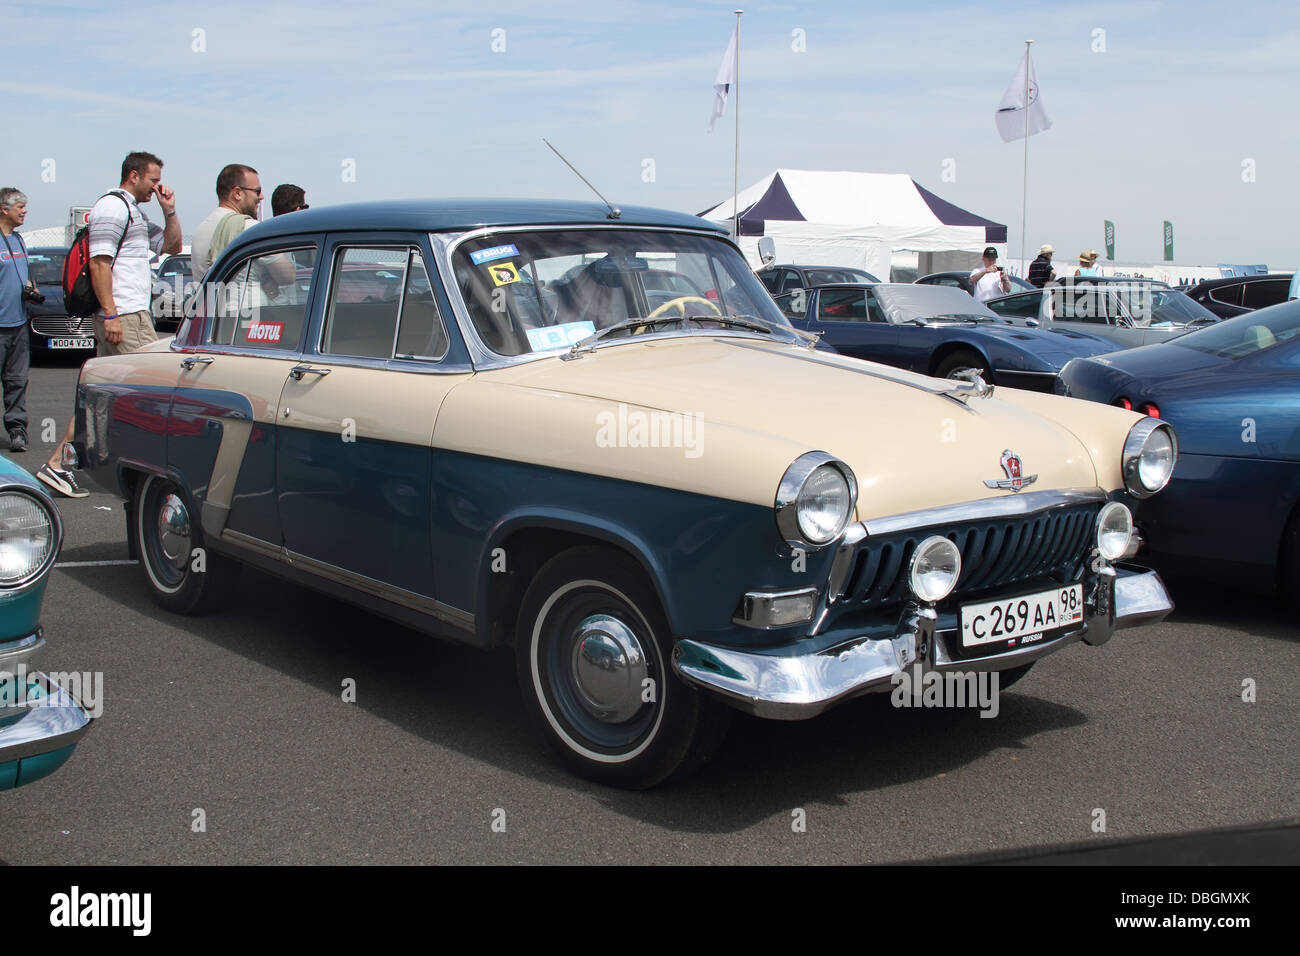 Classic Russian Saloon Car In Turquoise Two Tone Dark Blue And Cream